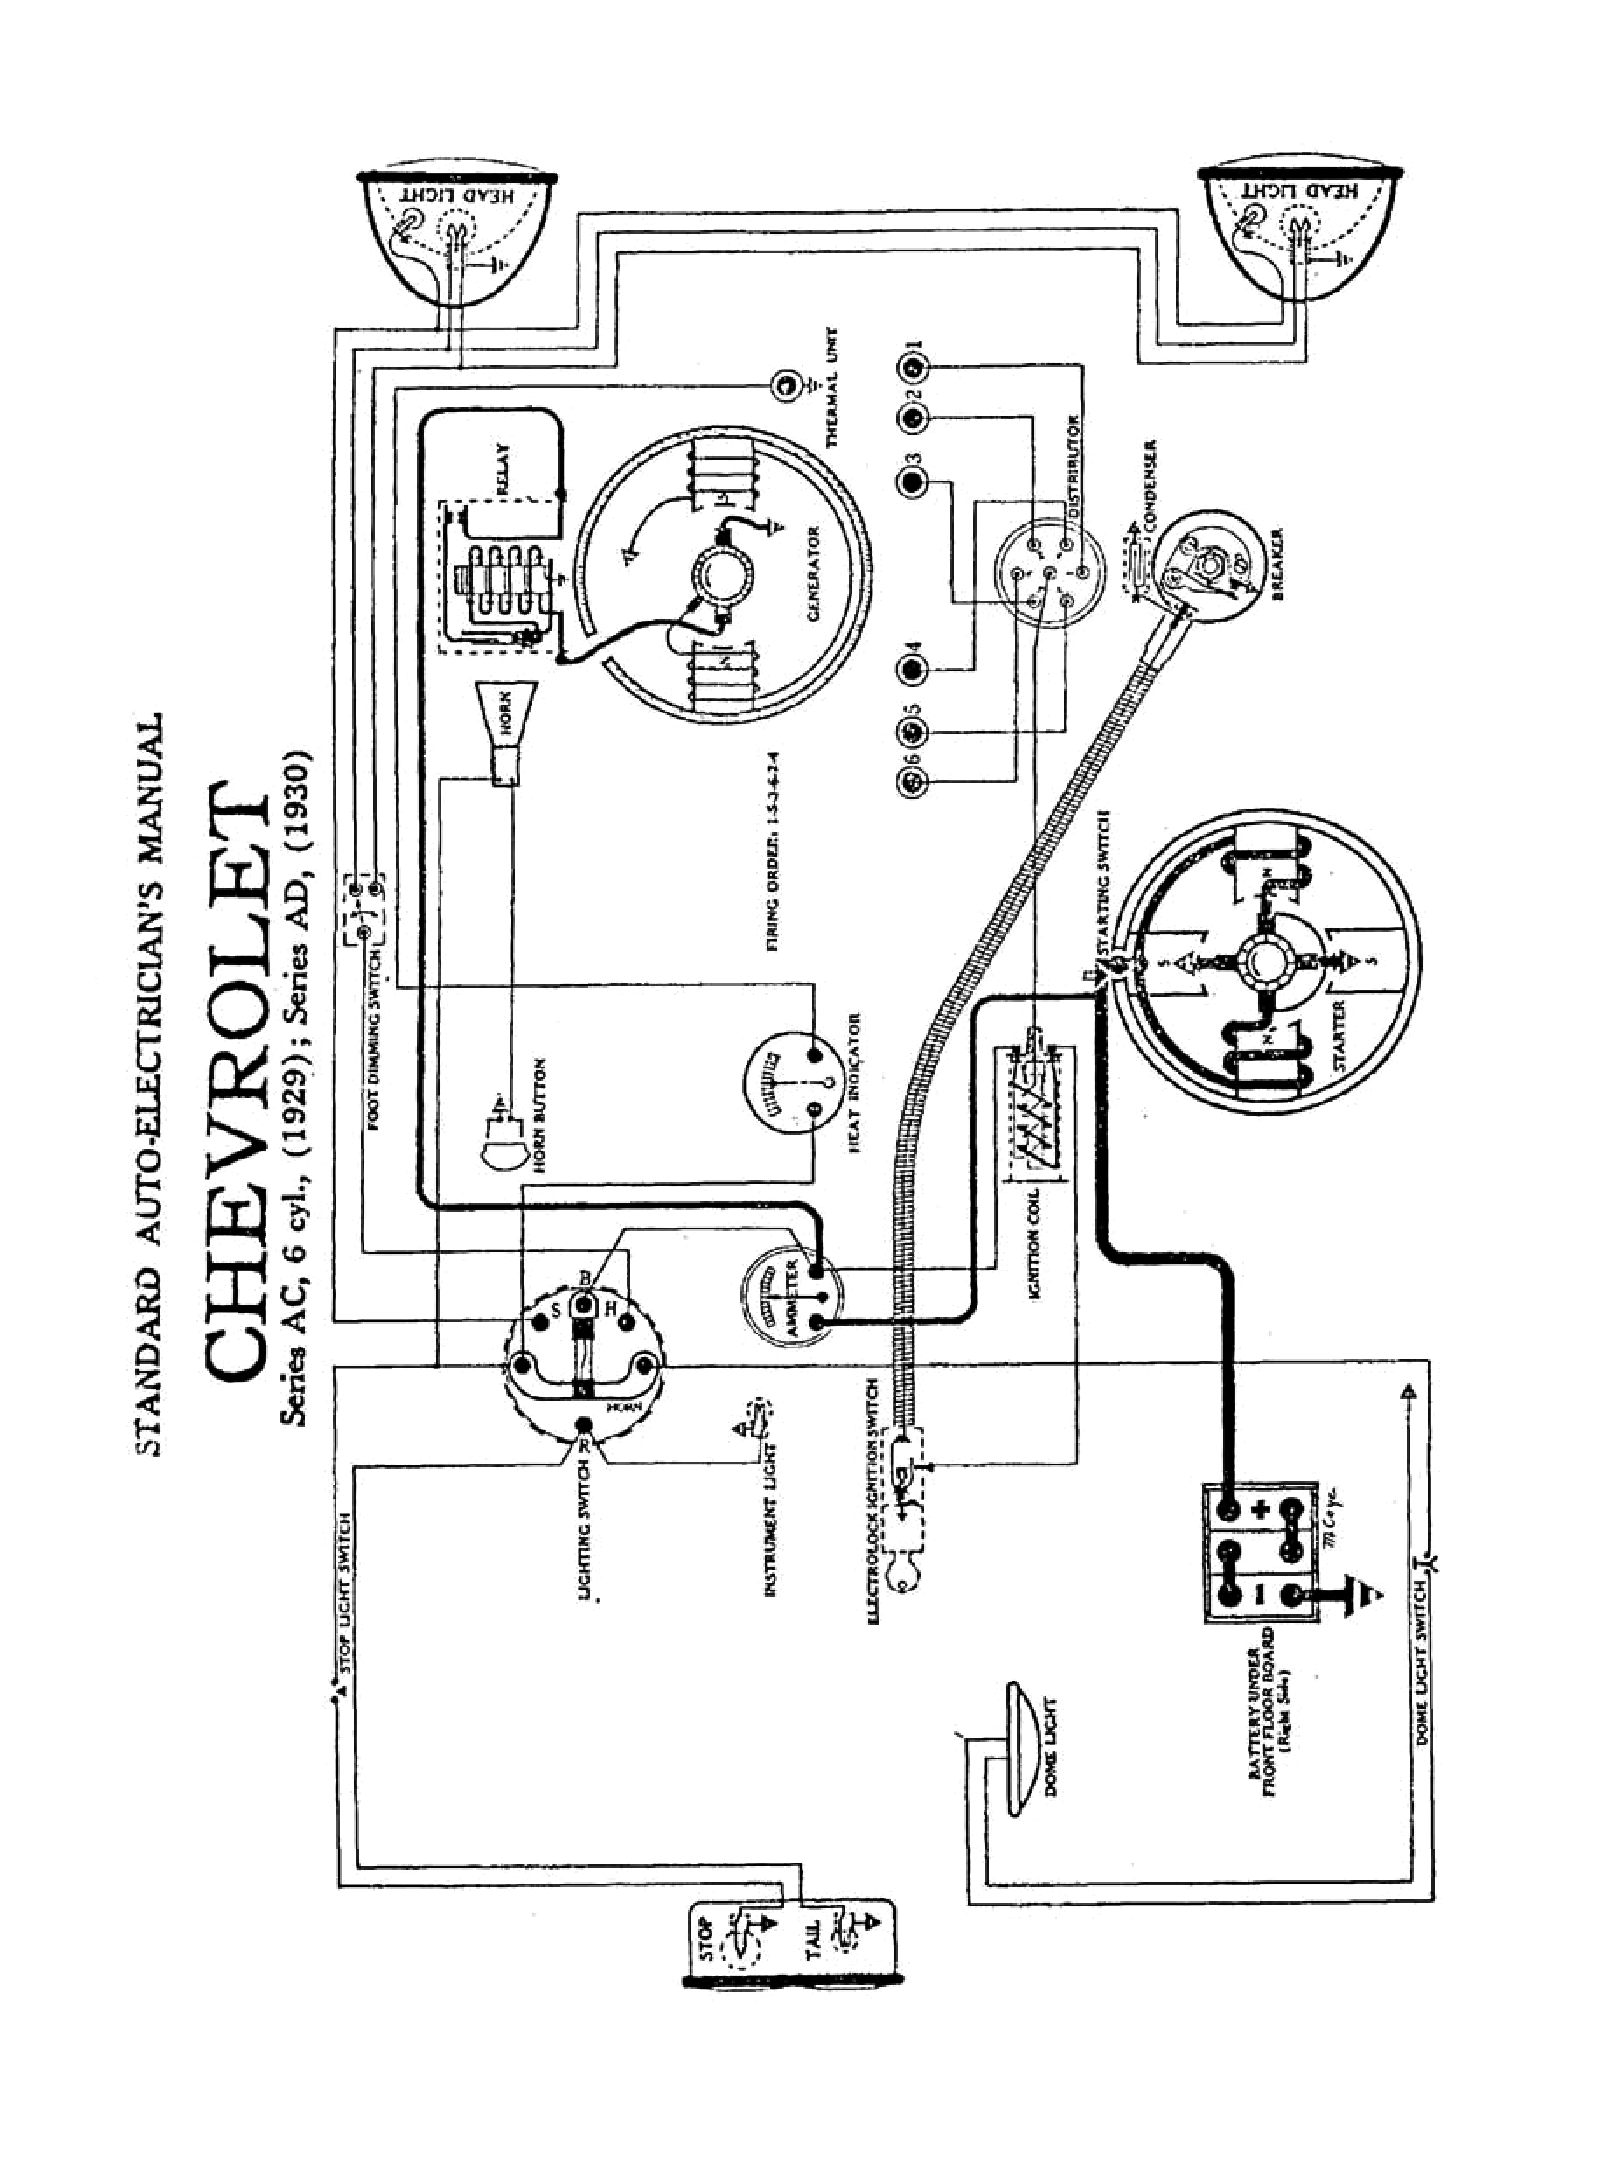 Gm Generator Wiring Diagram Libraries 700r4 Schematic Third Levelgm Data A Non